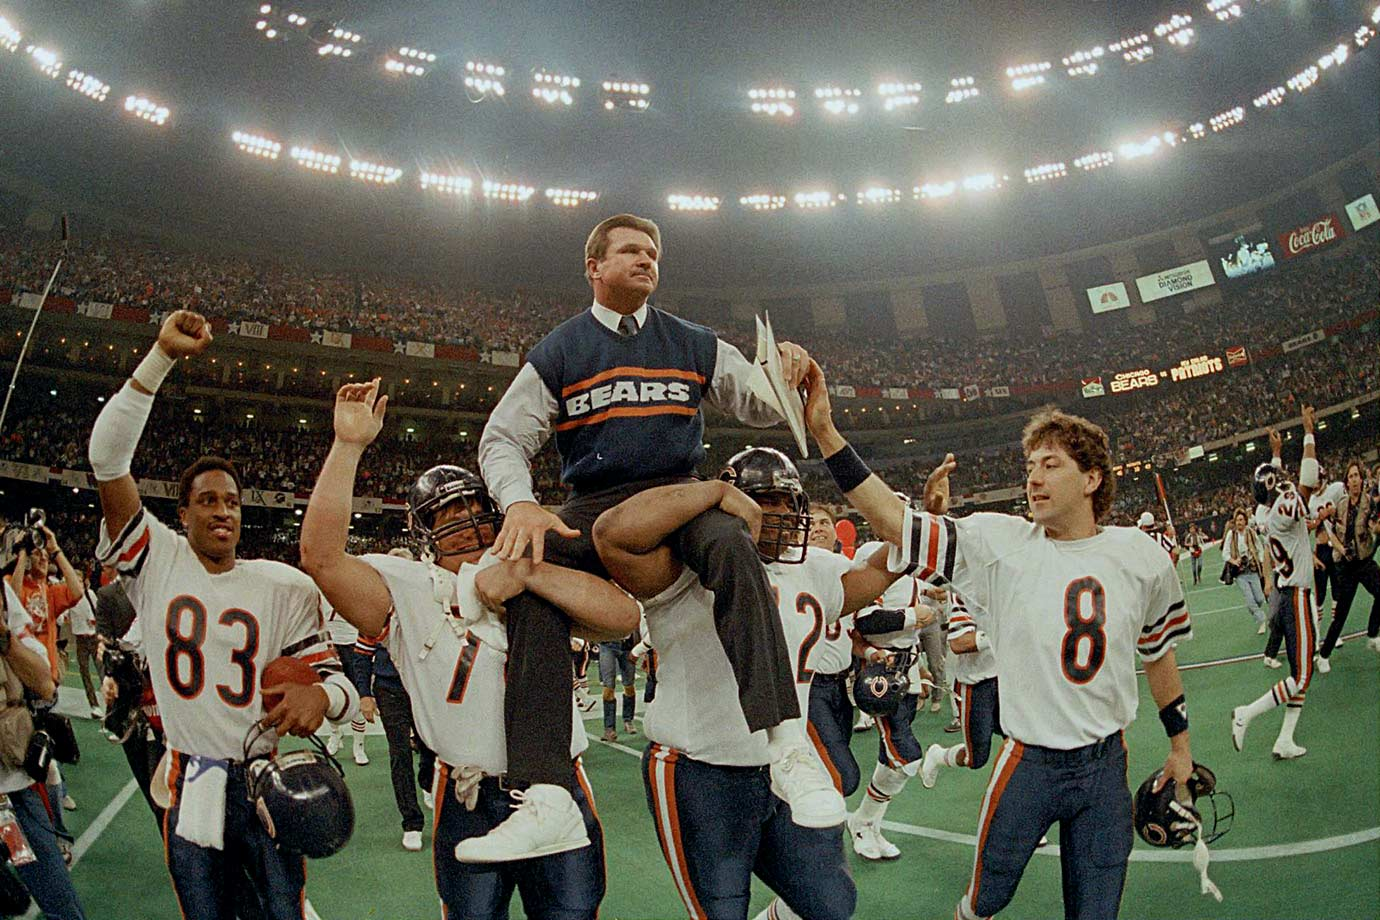 Jan. 26, 1986 — Super Bowl XX, Chicago Bears vs. New England Patriots